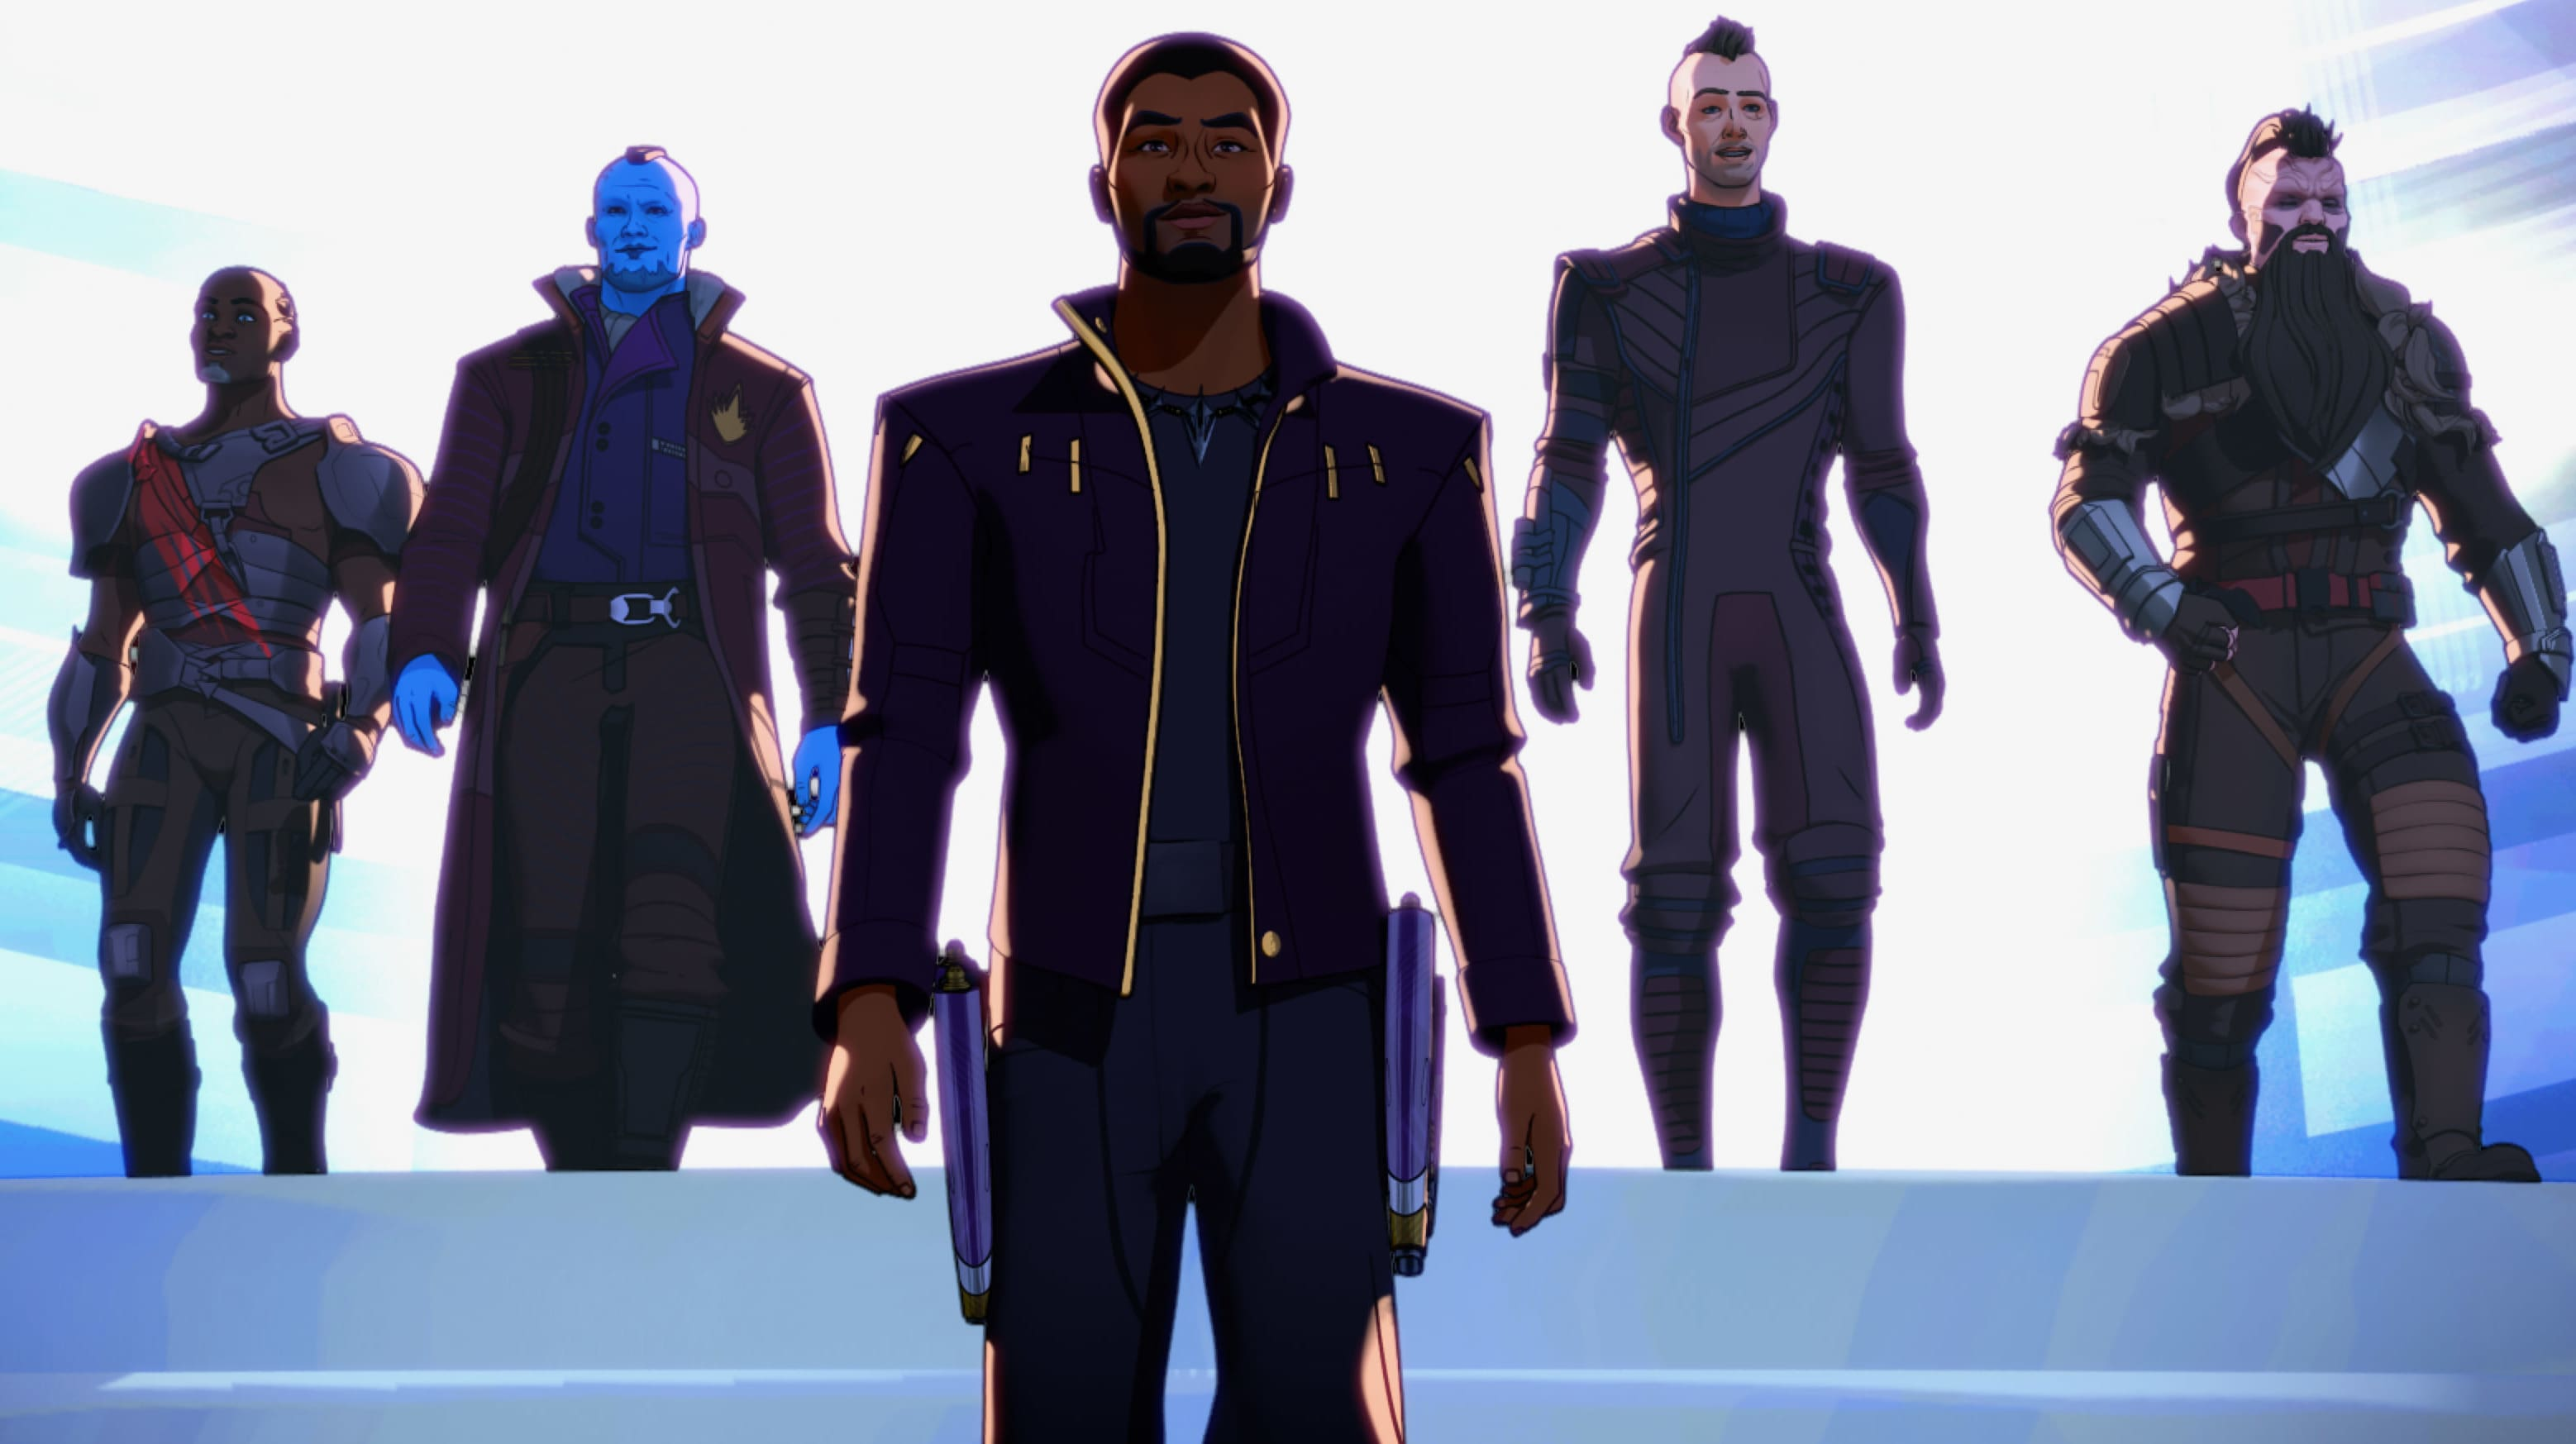 (L-R): Korath, Yondu, T'Challa/Star-Lord, Kraglin and Taserface in Marvel Studios' WHAT IF…? exclusively on Disney+. ©Marvel Studios 2021. All Rights Reserved.